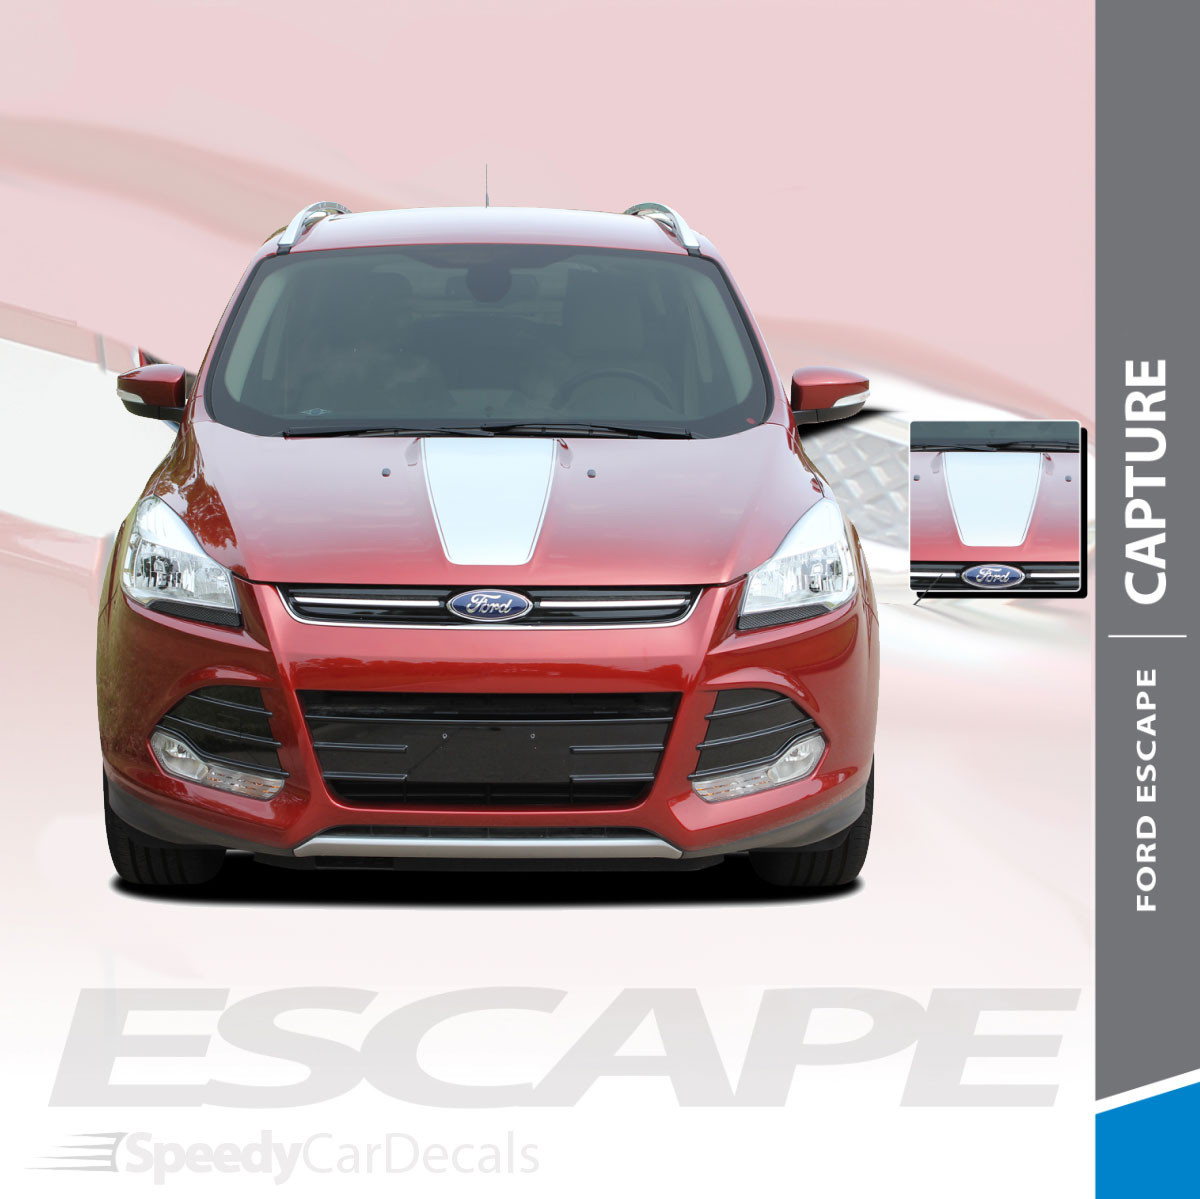 capture-outbreak-ford-escape.jpg